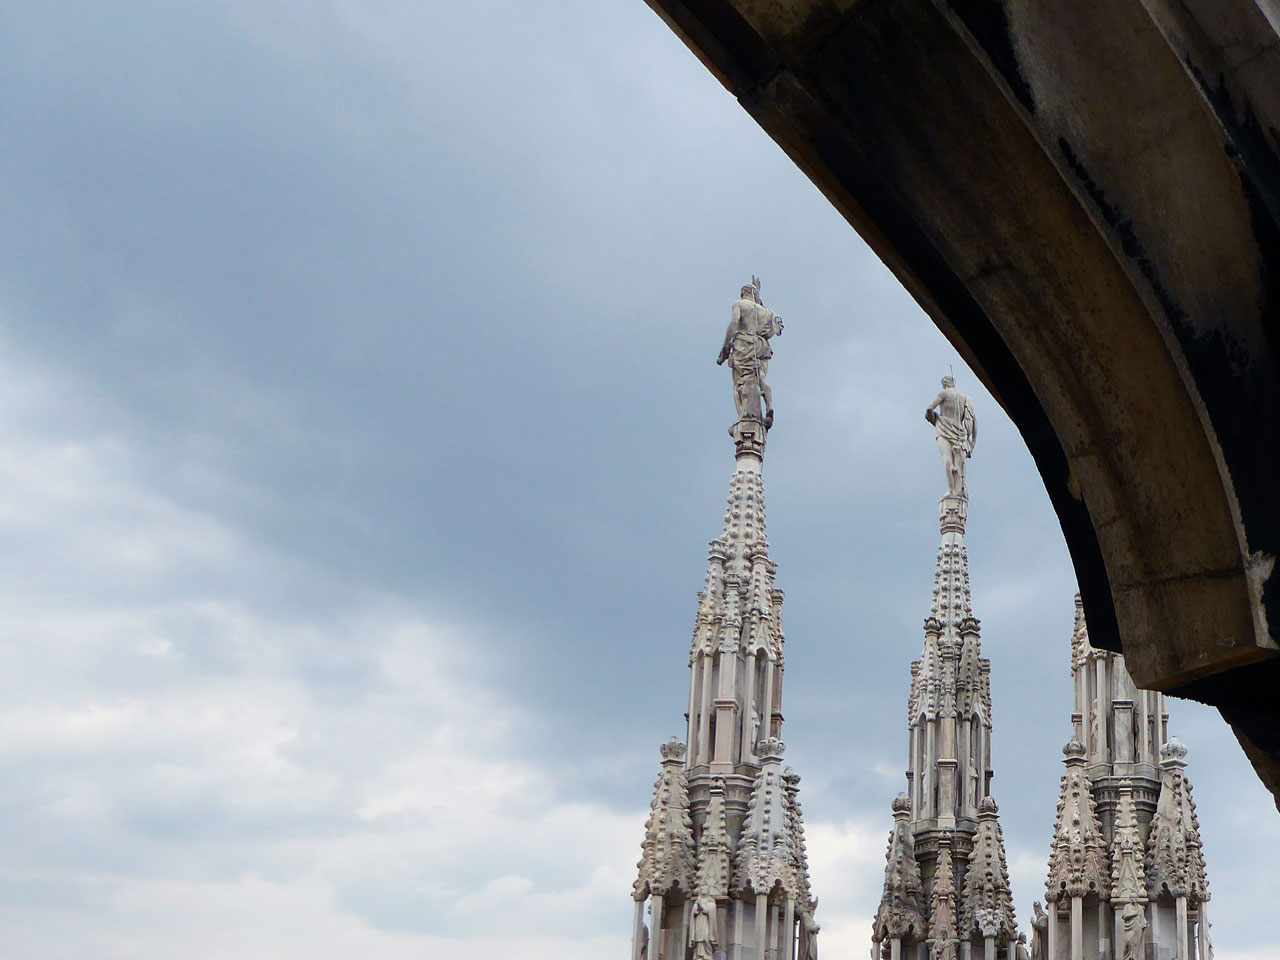 Detail on the rooftop of the Duomo, Milan